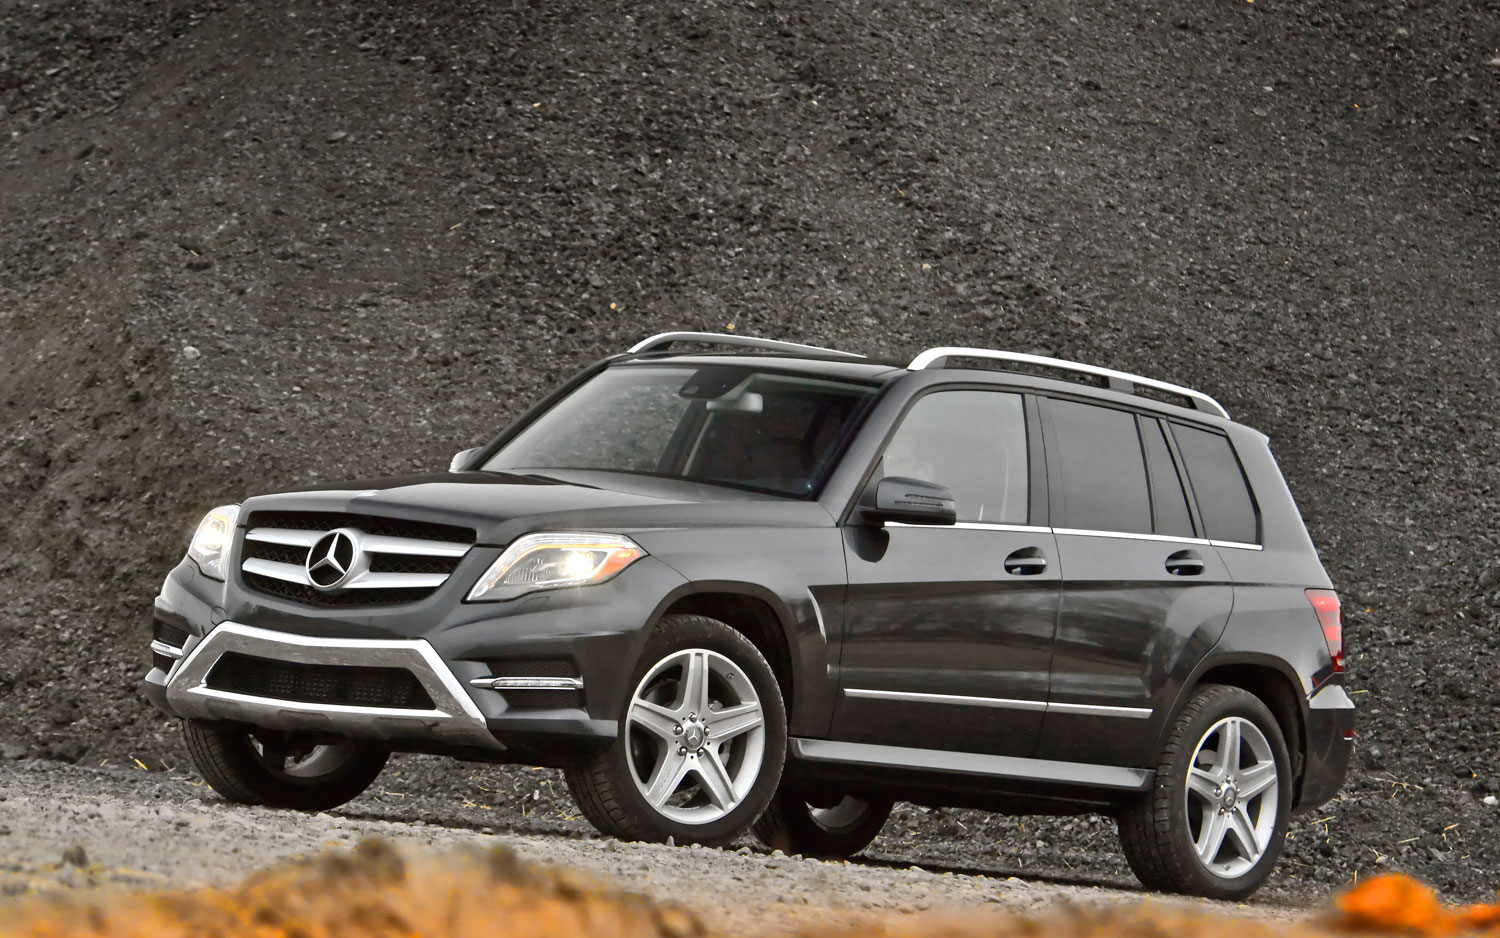 2013 mercedes benz glk250 bluetec 4matic driven. Black Bedroom Furniture Sets. Home Design Ideas